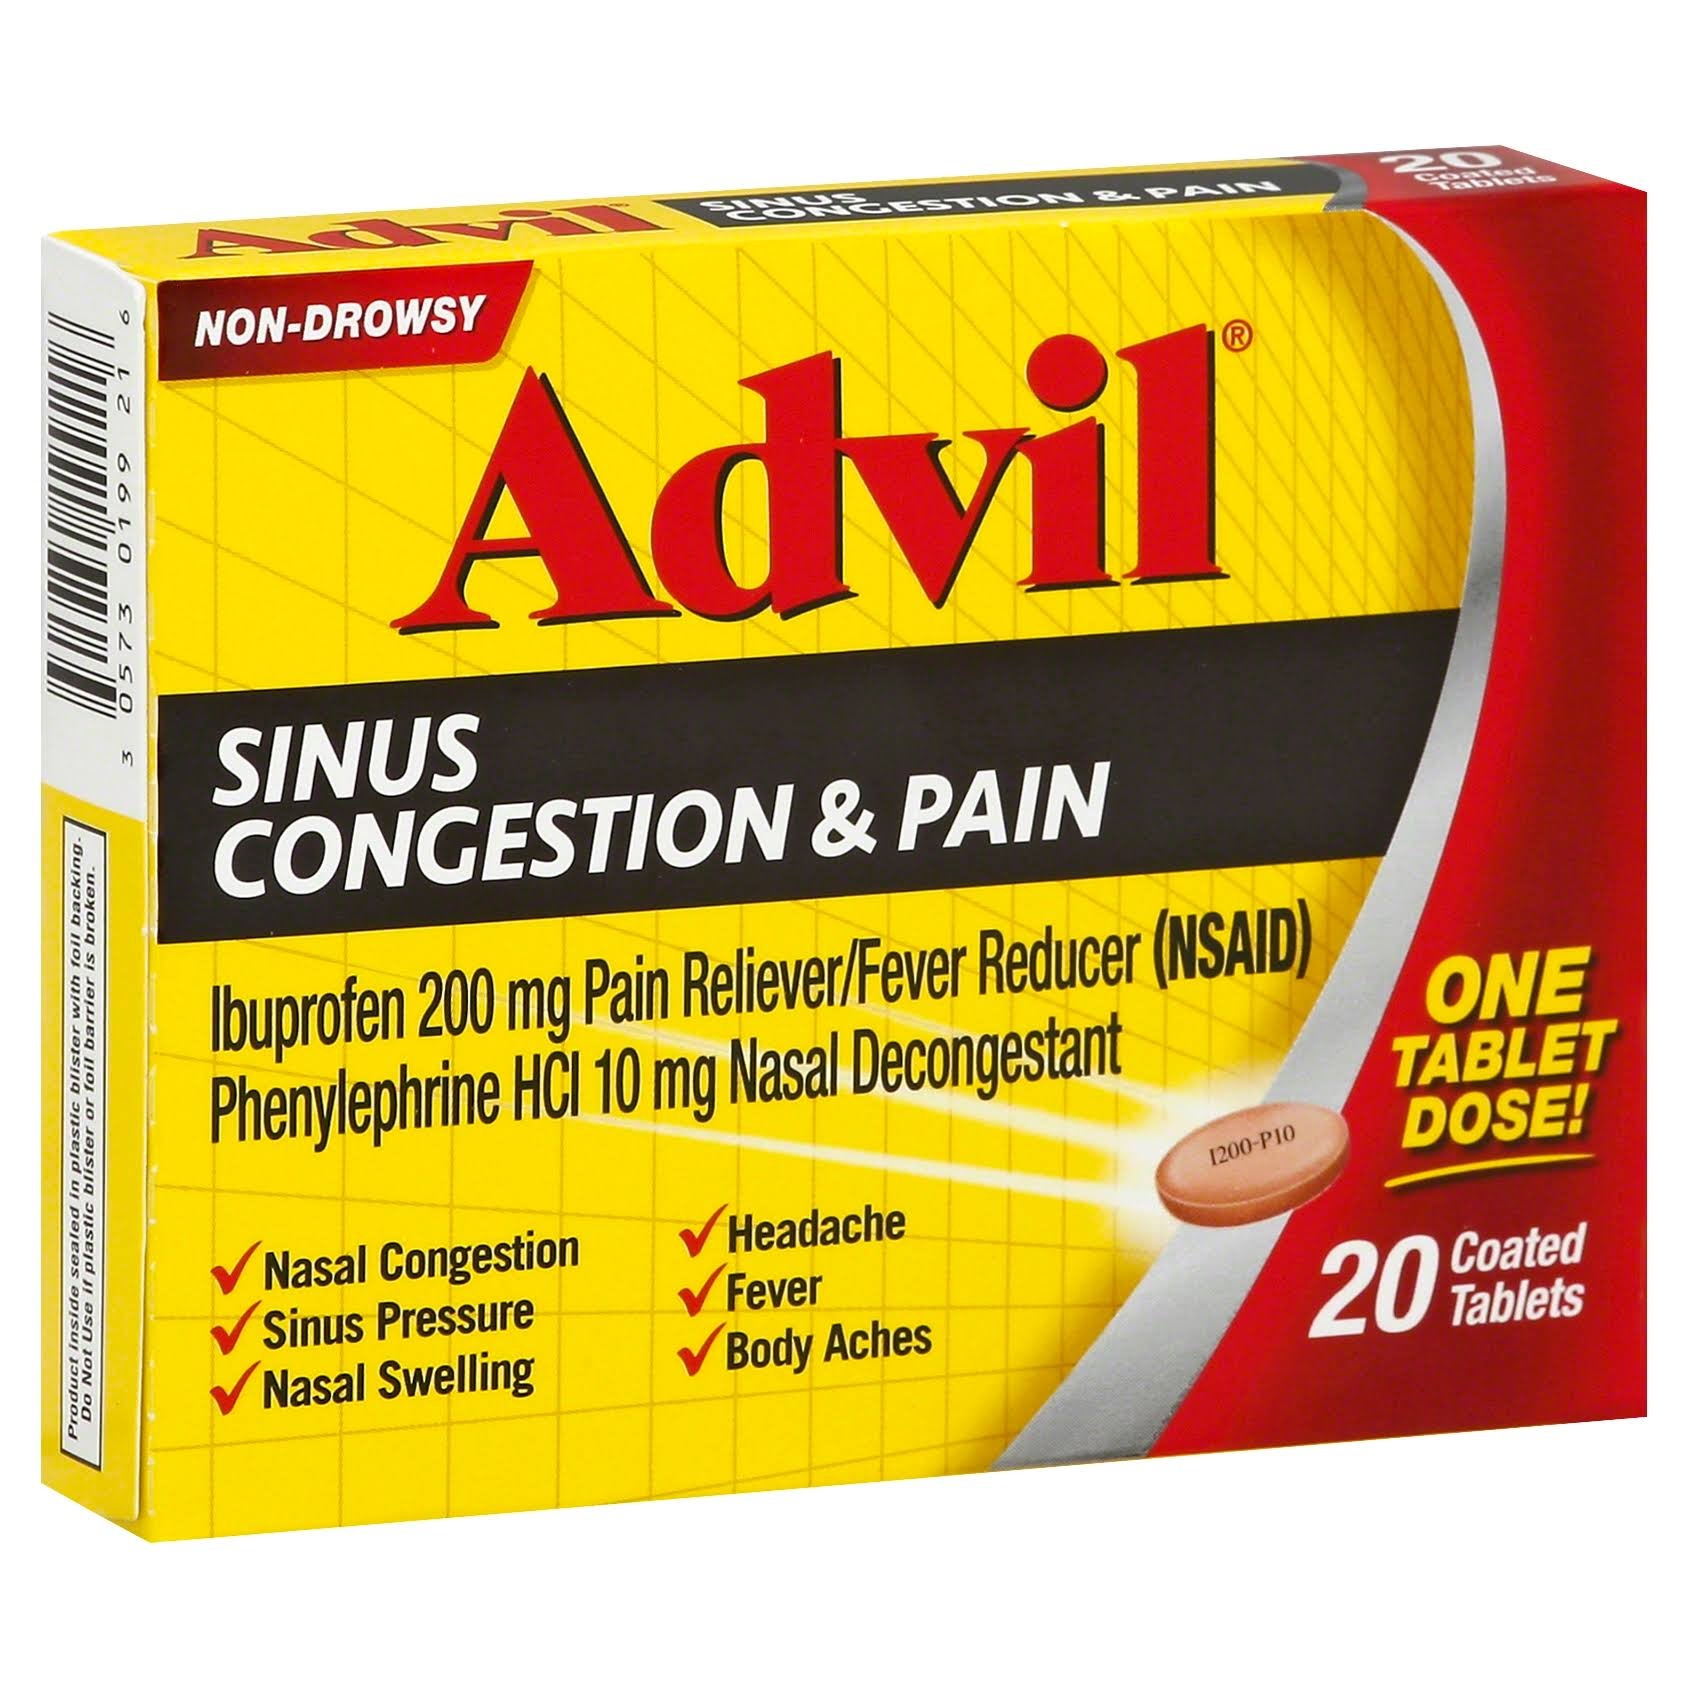 Advil Sinus Congestion & Pain Reliever Coated Tablets - 20ct